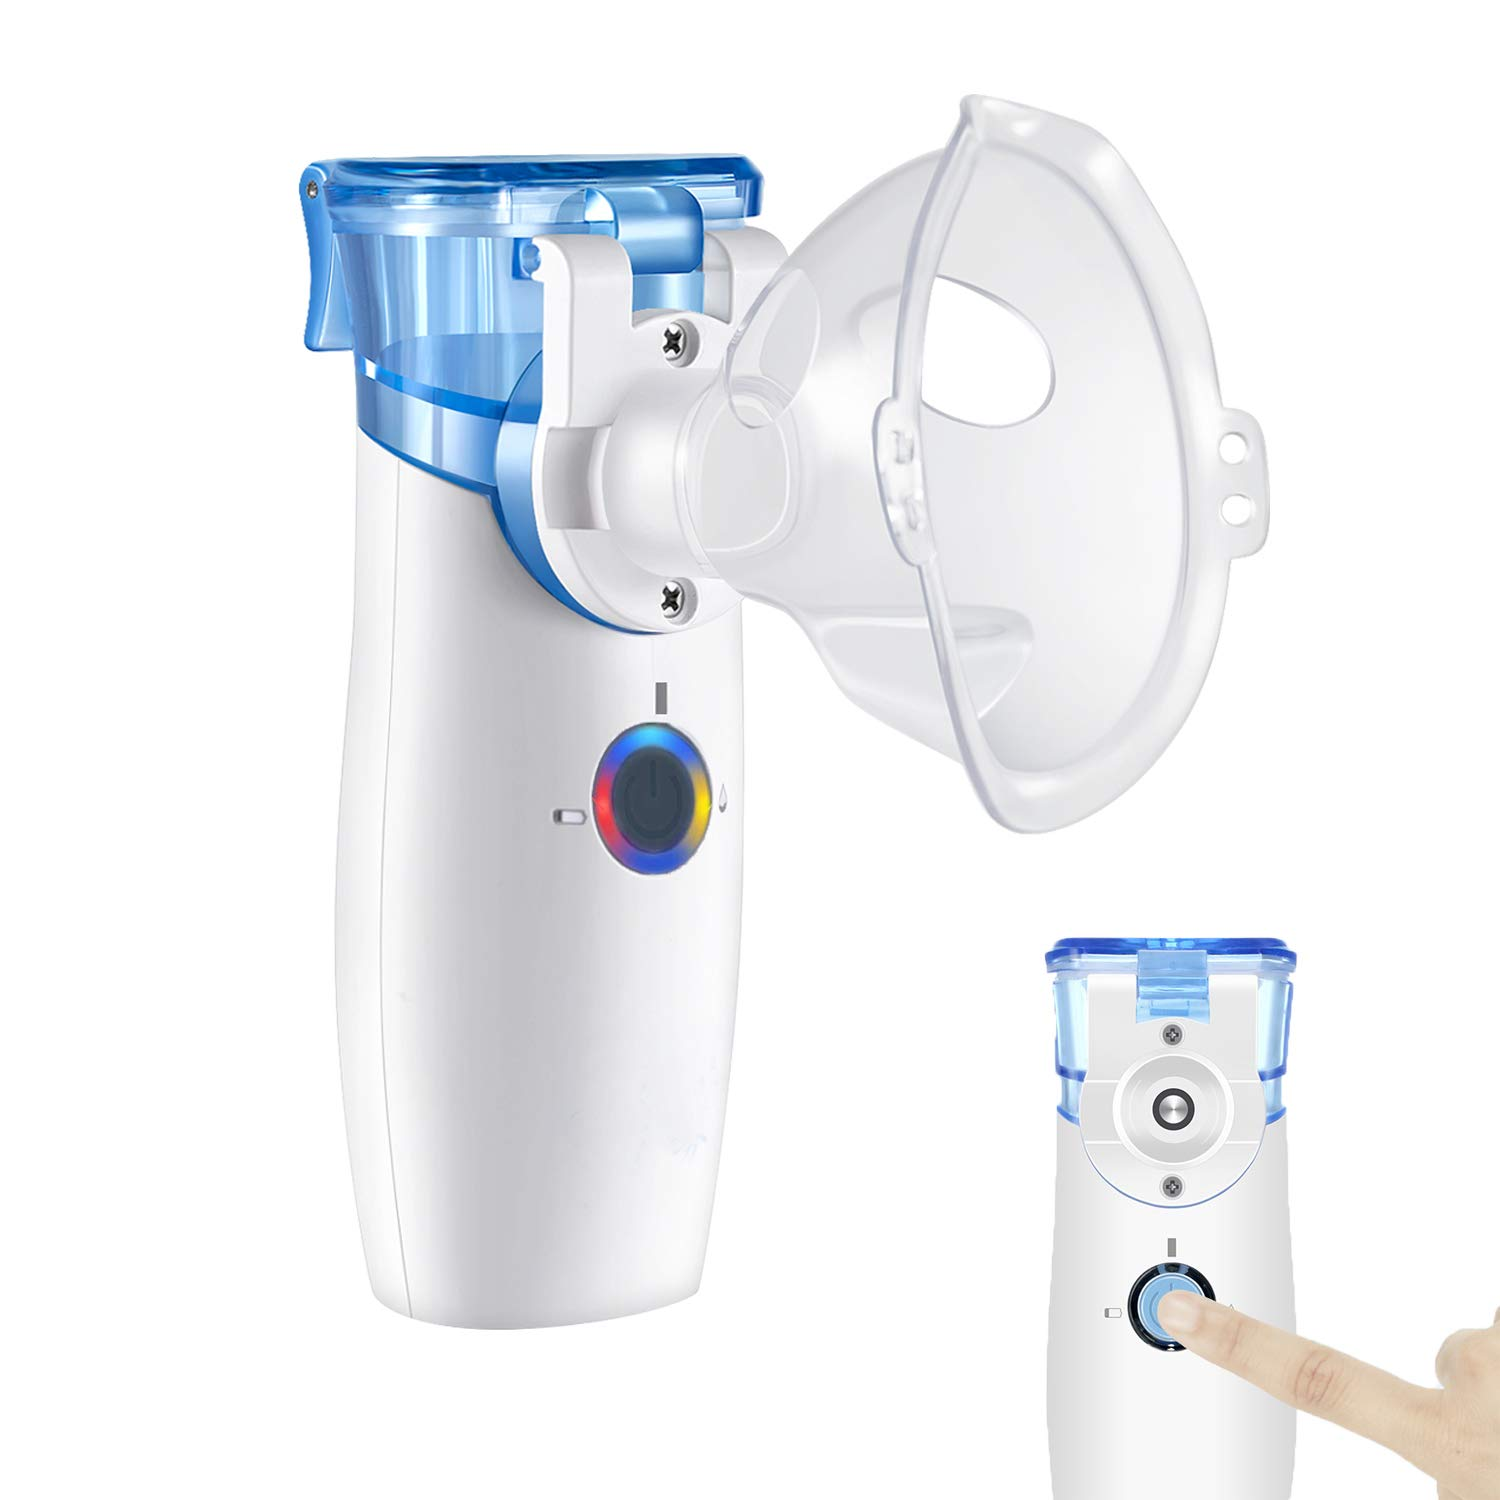 Portable Nebuliser Machine - Handheld Nebuliser Personal Inhalers for Breathing Problems for Travel,Home Daily Use